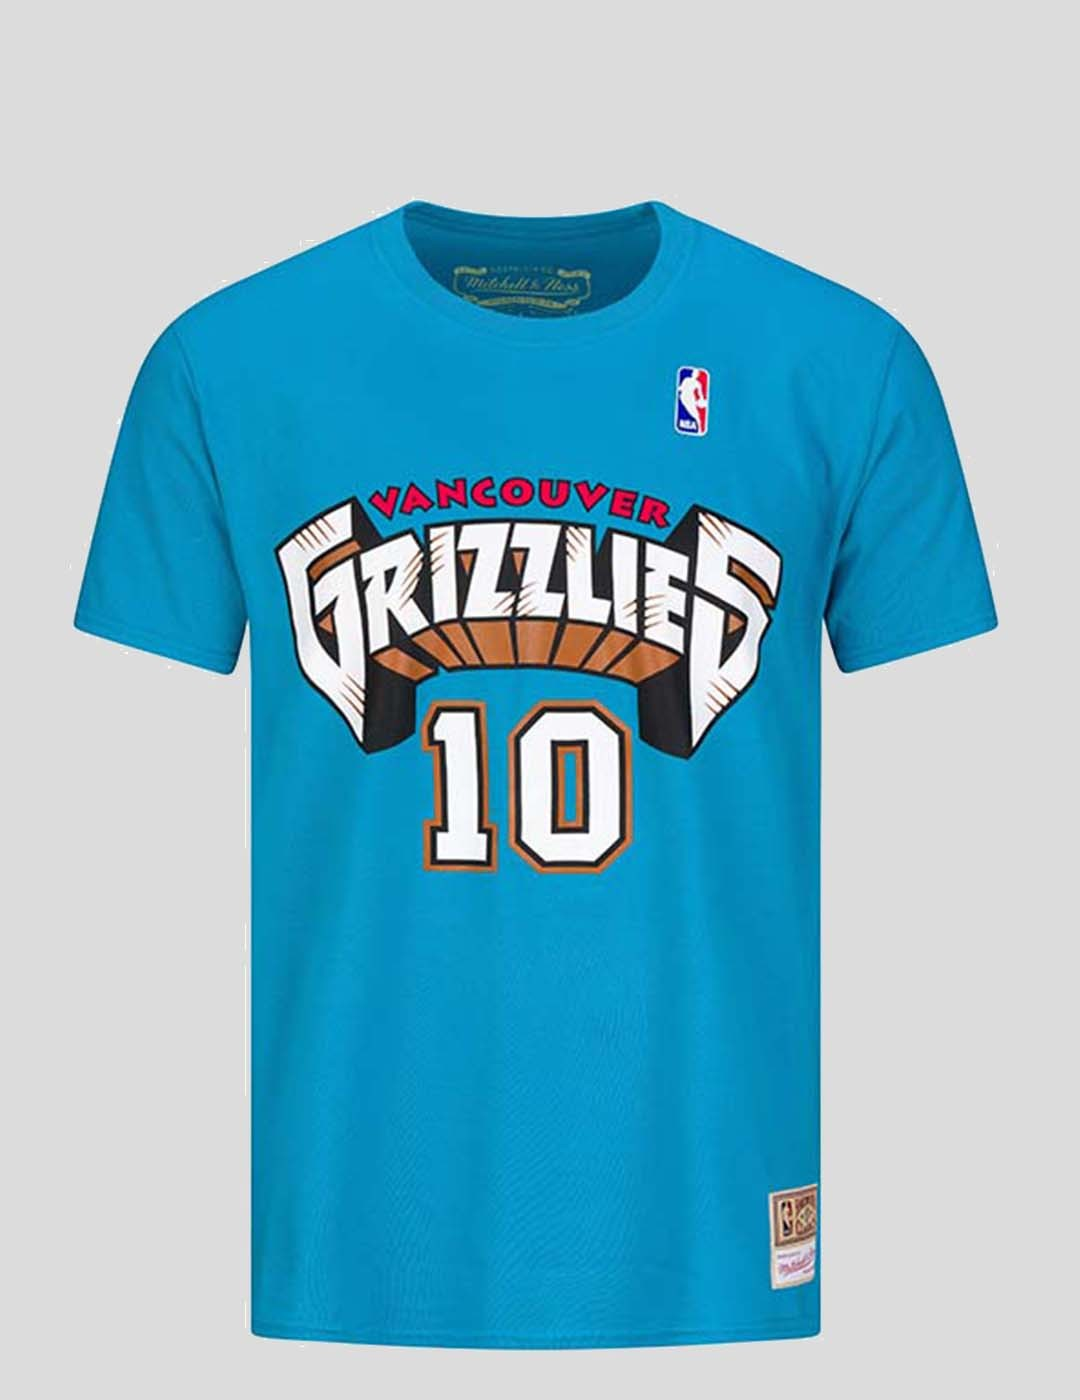 CAMISETA MITCHELL & NESS V GRIZZLIES - MIKE BIBBY TEE TEAL